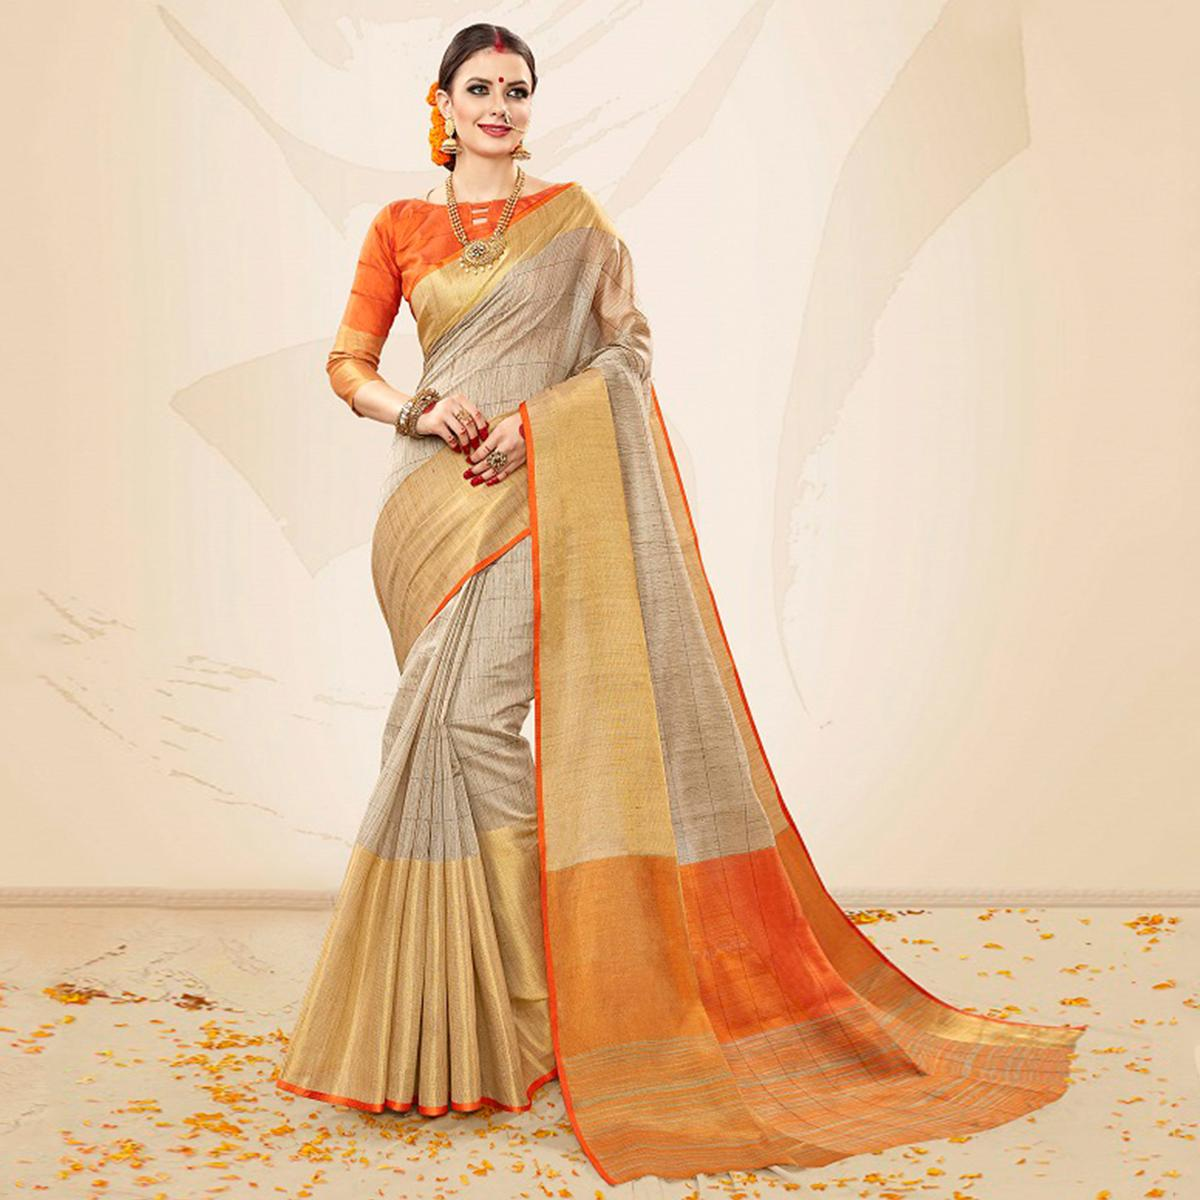 Opulent Beige-Orange Colored Festive Wear Cotton Silk Saree